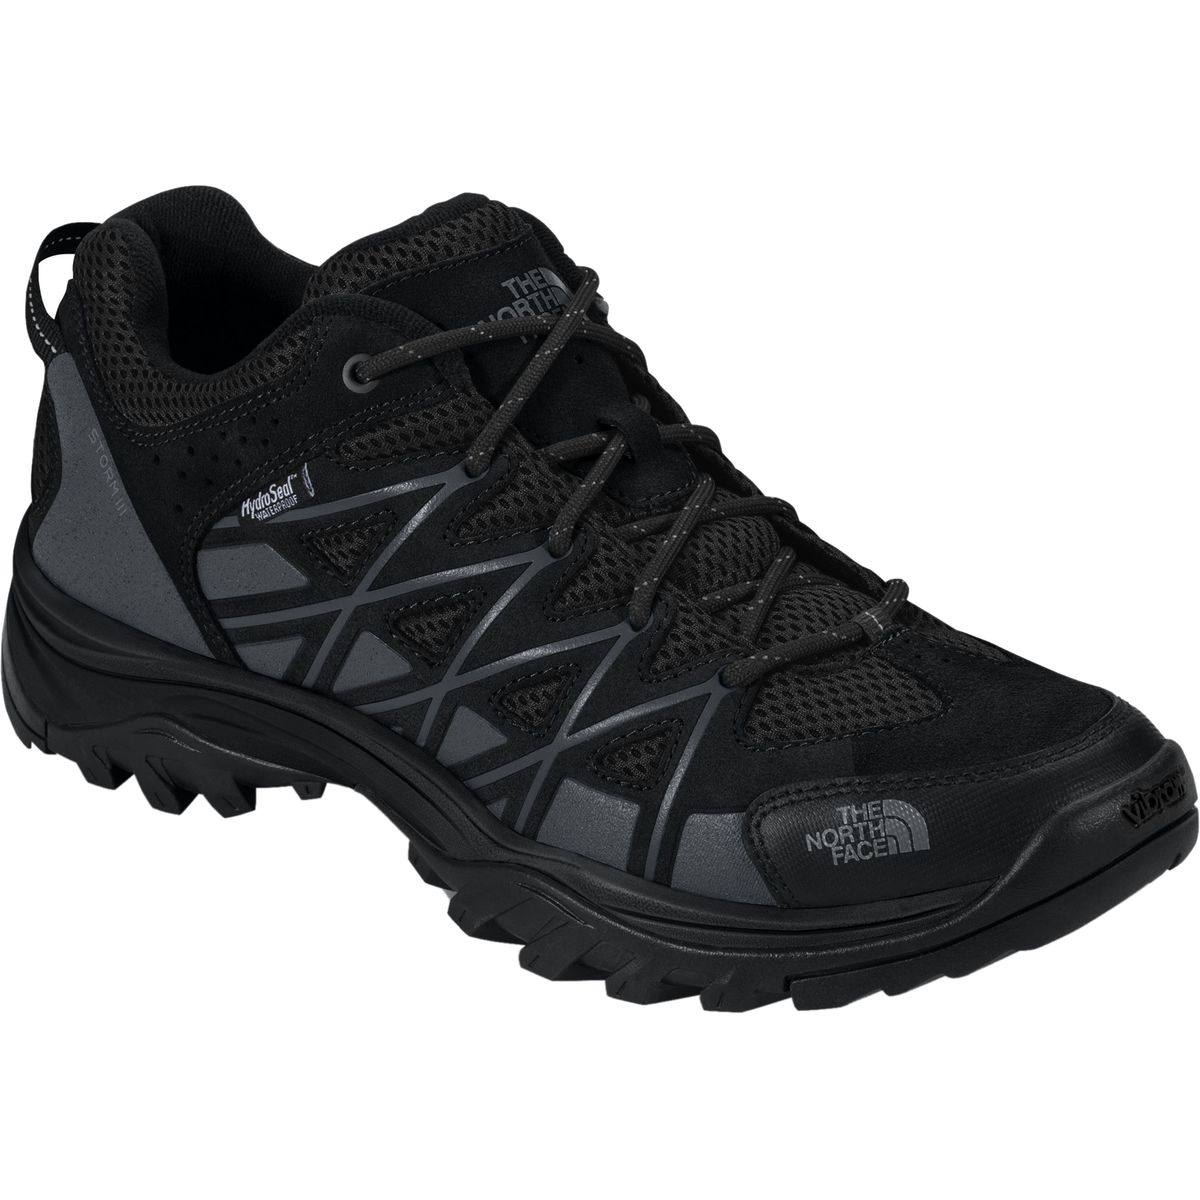 The North Face Storm III Waterproof